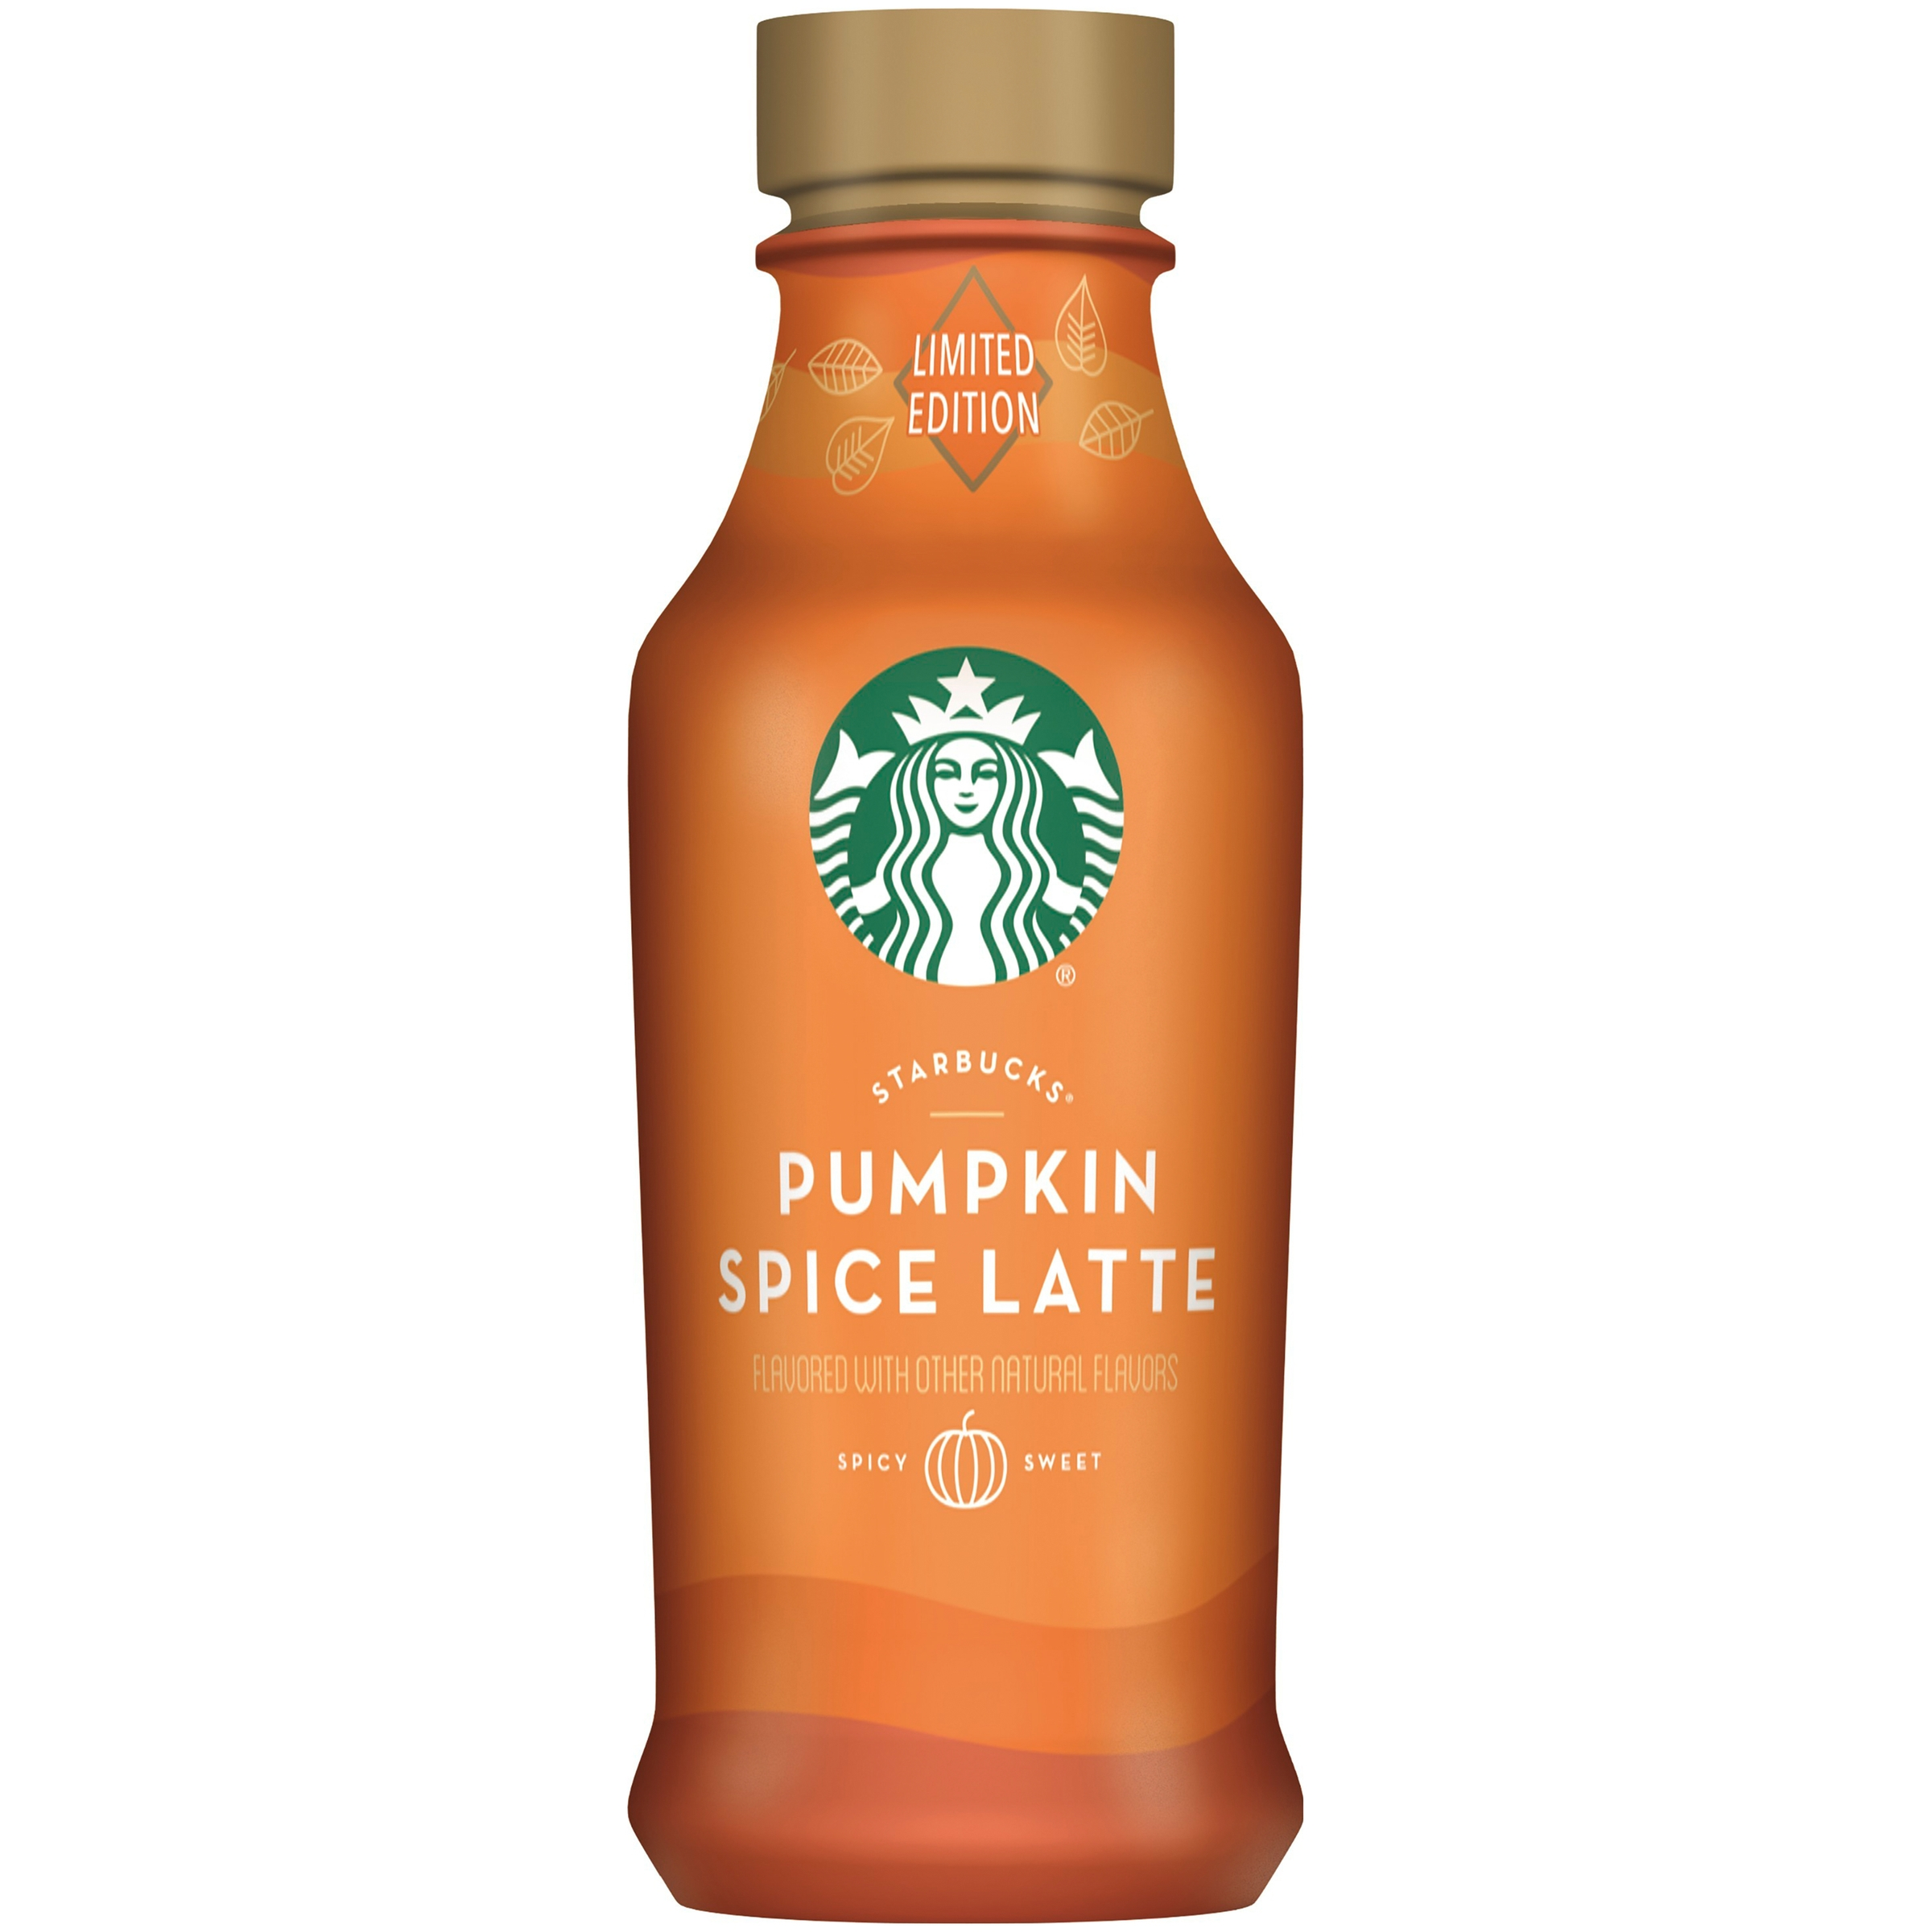 Starbucks Pumpkin Spice Latte Espresso Beverage 14 fl. oz. Bottle